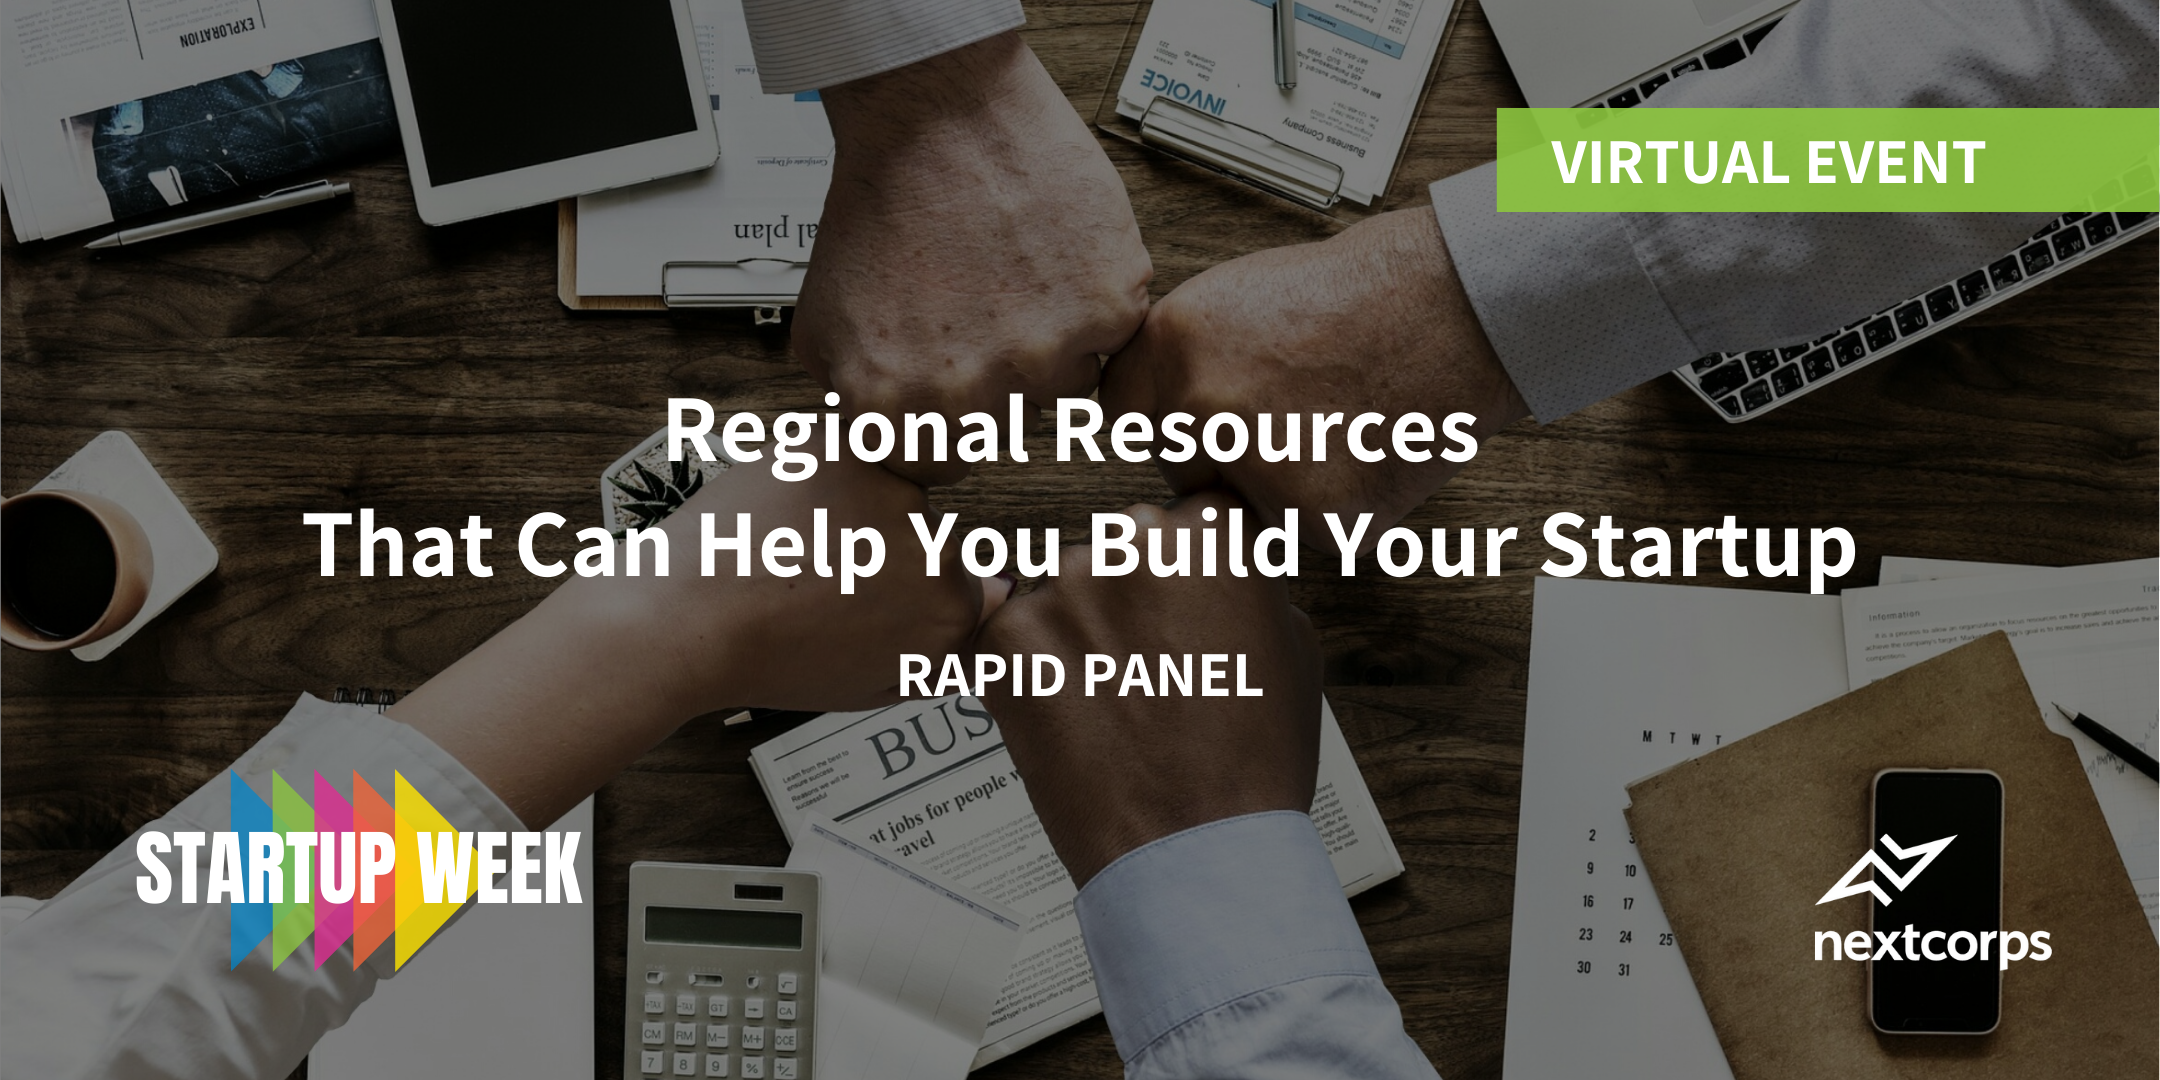 Regional Resources That Can Help You Build Your Startup